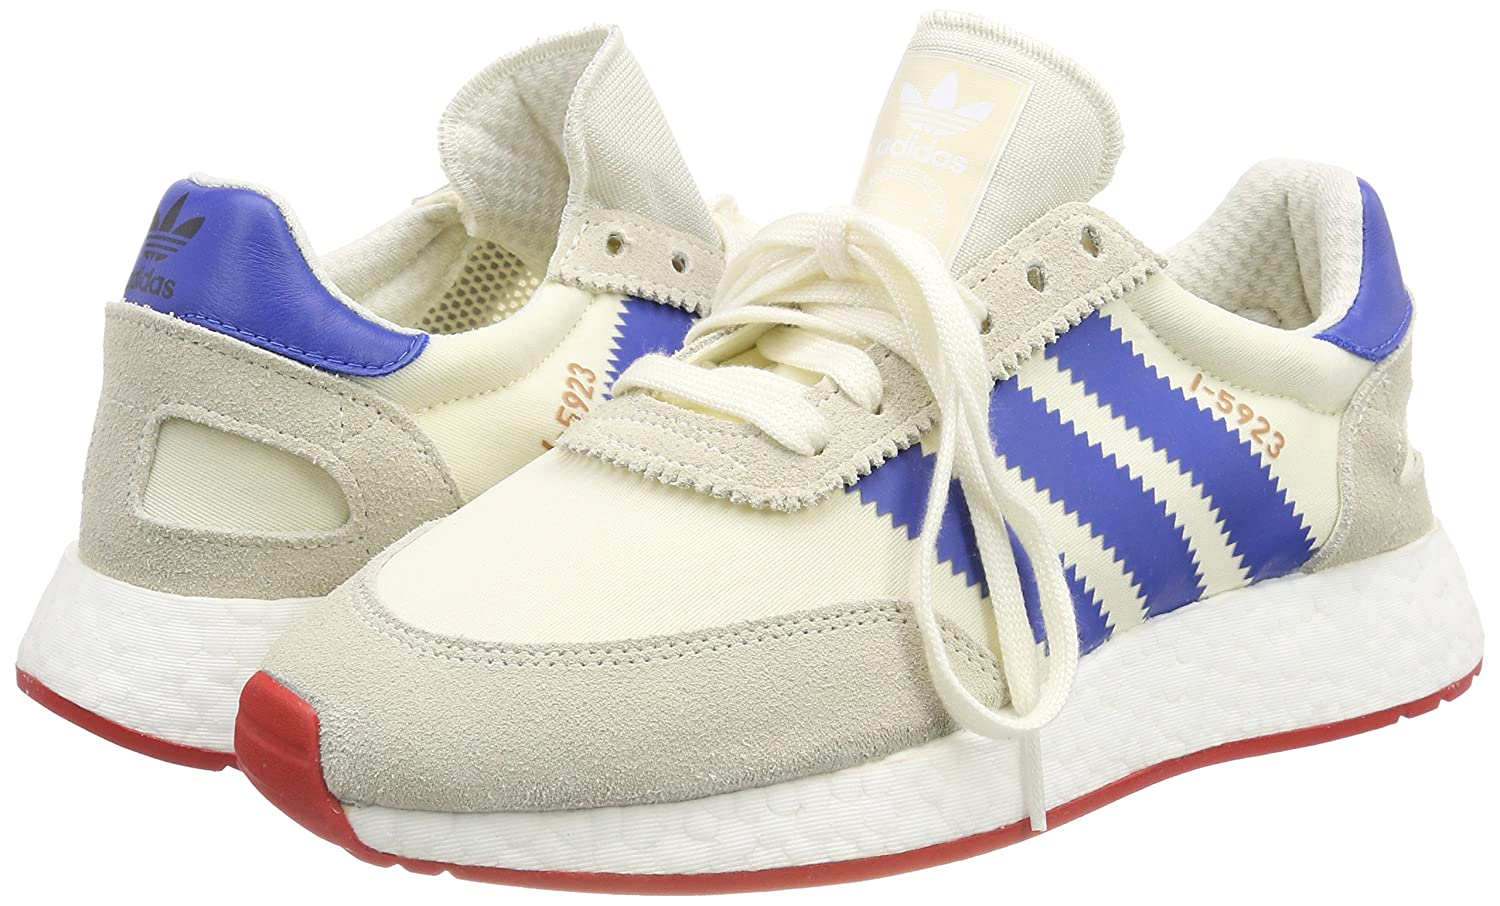 the best attitude 94233 1aabc adidas I-5923, Sneakers Basses homme - Blanc (Off White blue core Red 0),  40 2 3 EU  Amazon.fr  Chaussures et Sacs